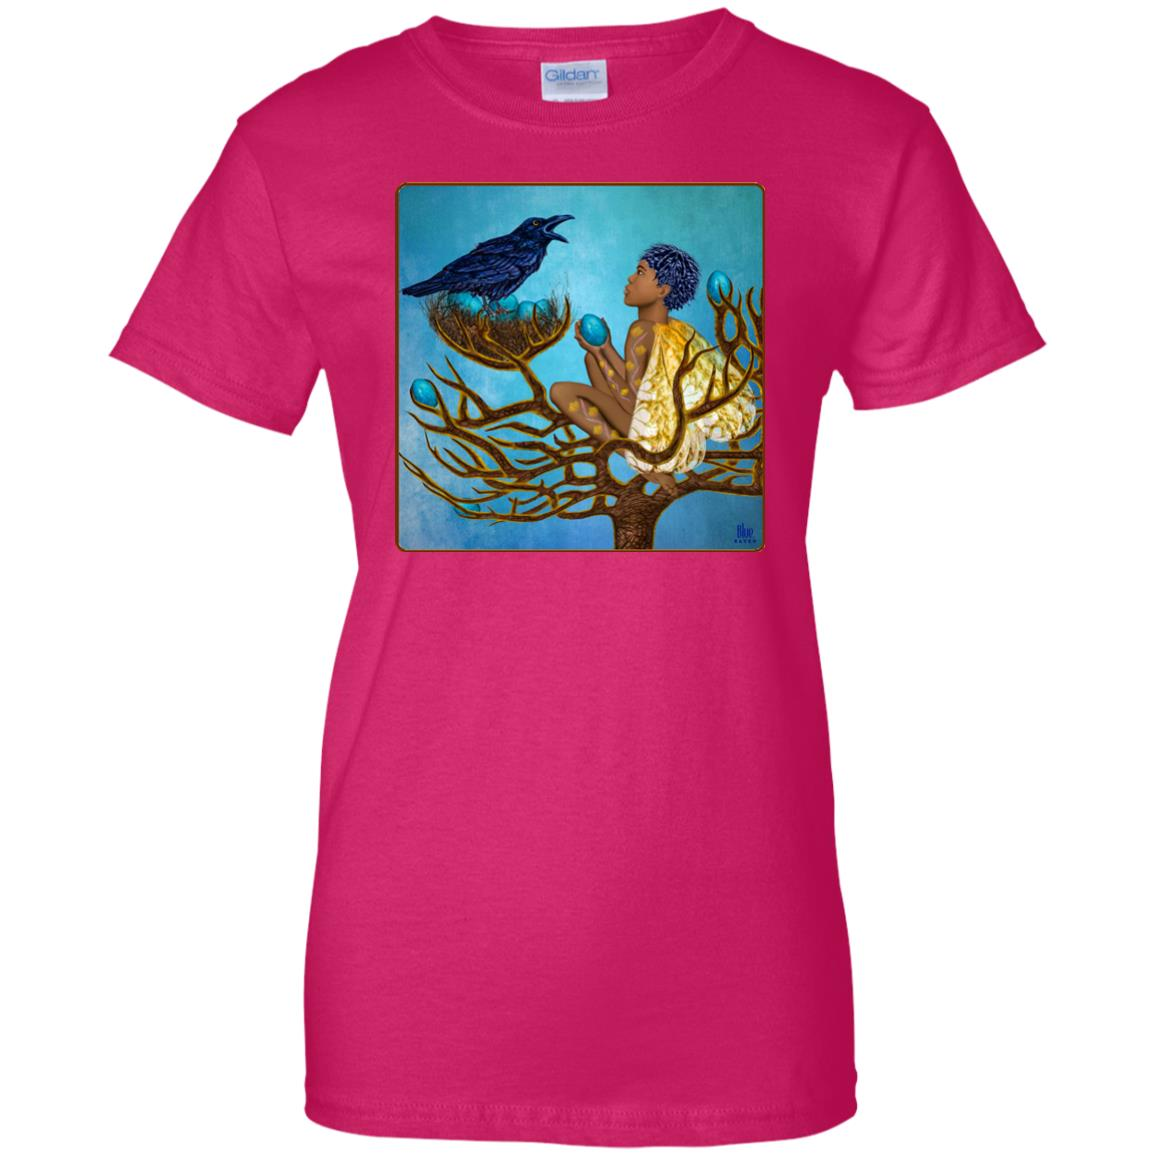 The blue raven's friend - Women's Relaxed Fit T-Shirt